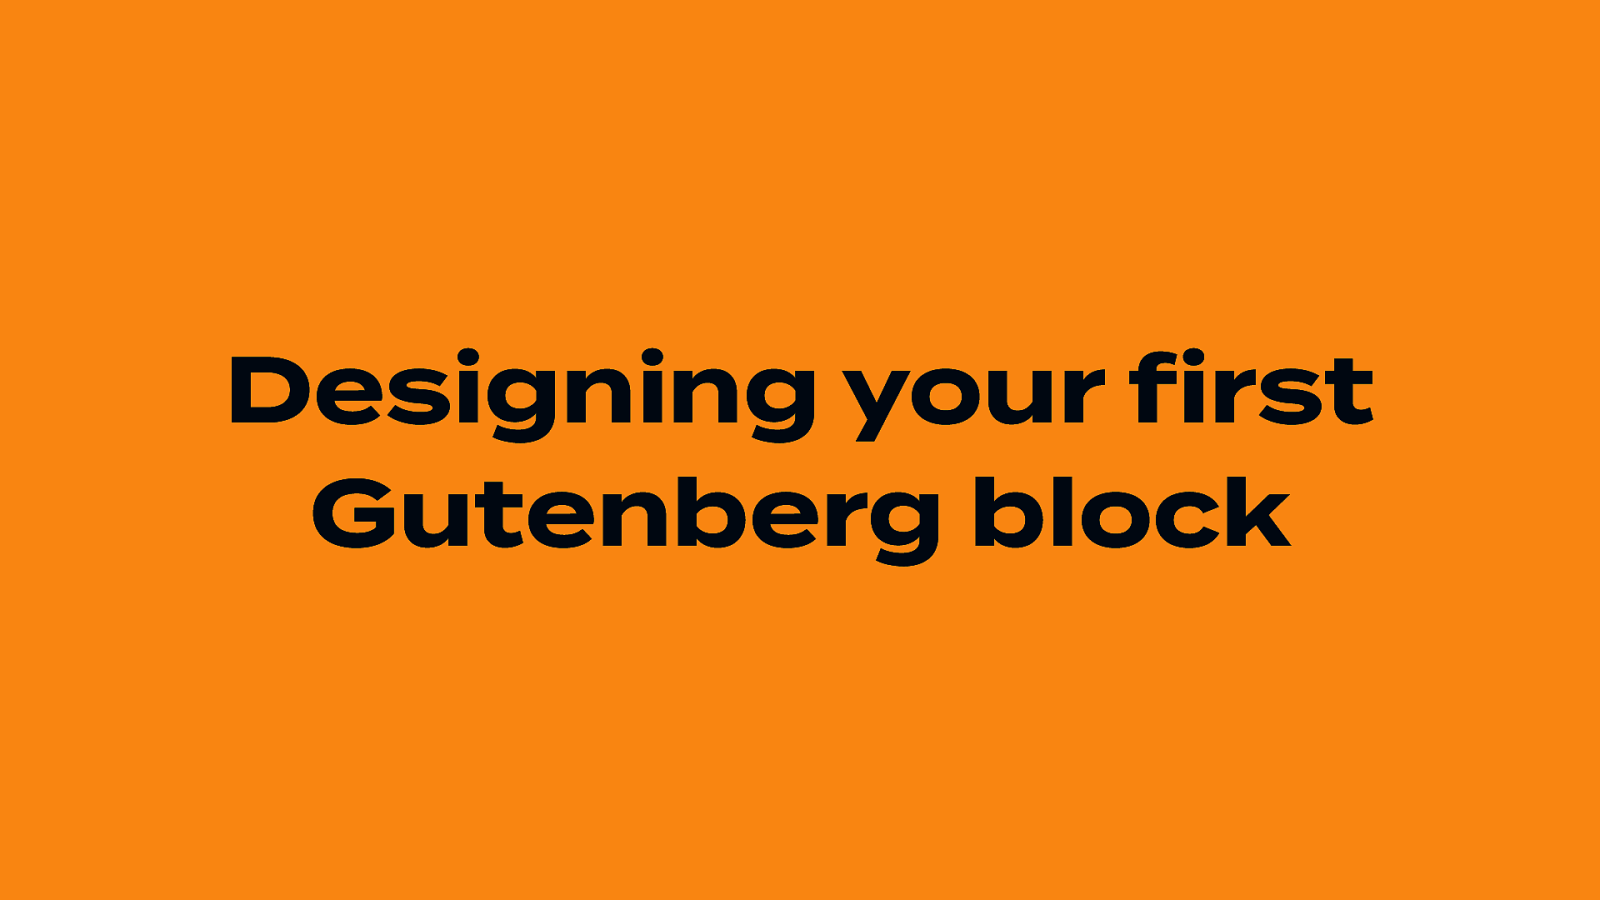 Designing your first Gutenberg block